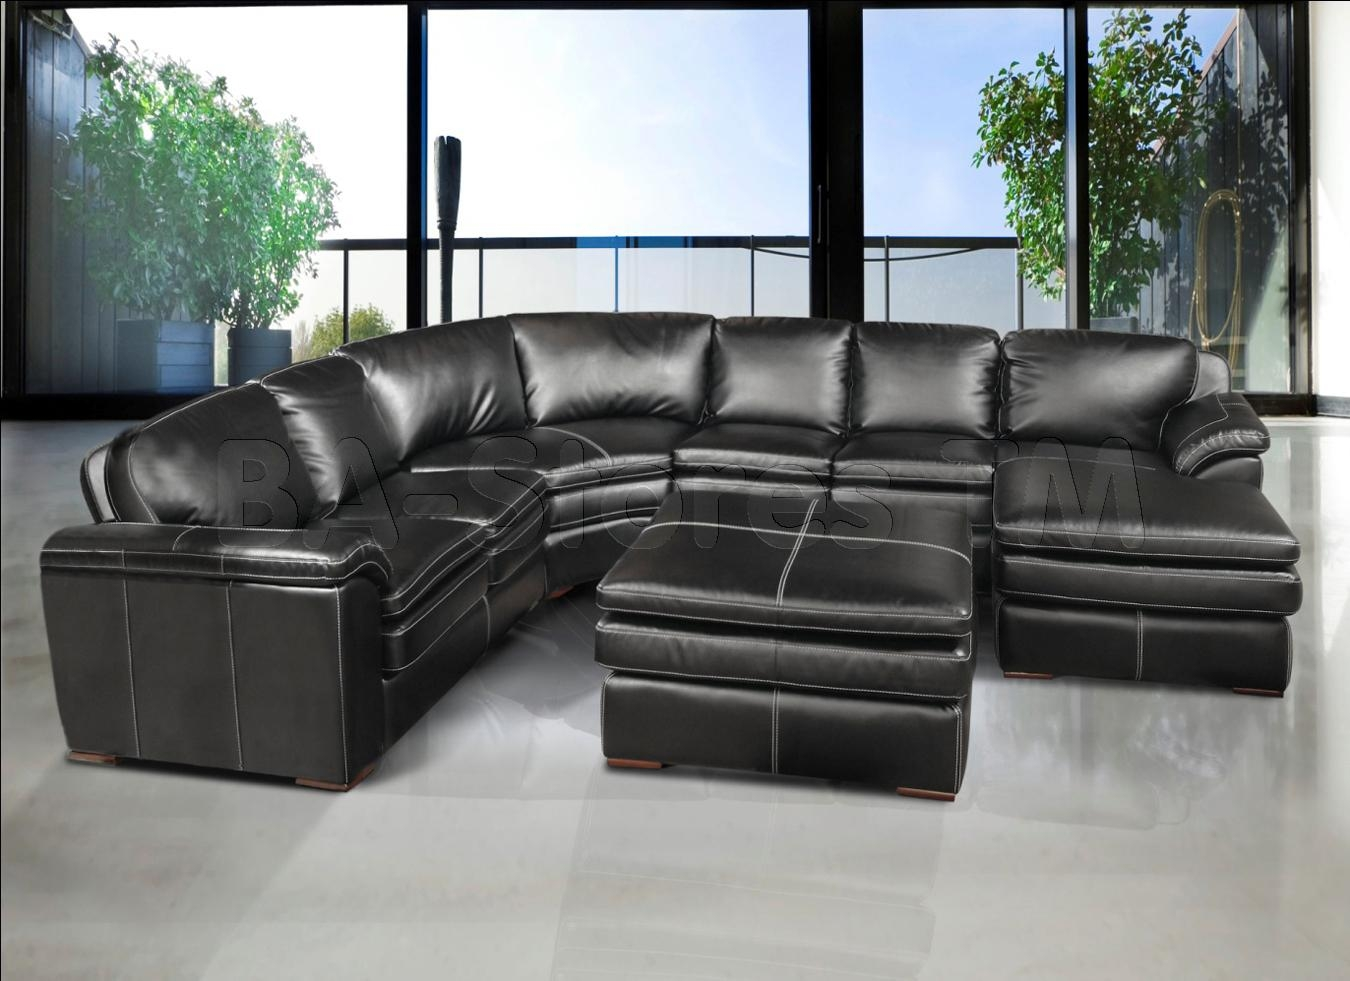 Gray Leather Sofa 21 Ideas Of Gray Leather Sectional Sofas Sofa Ideas